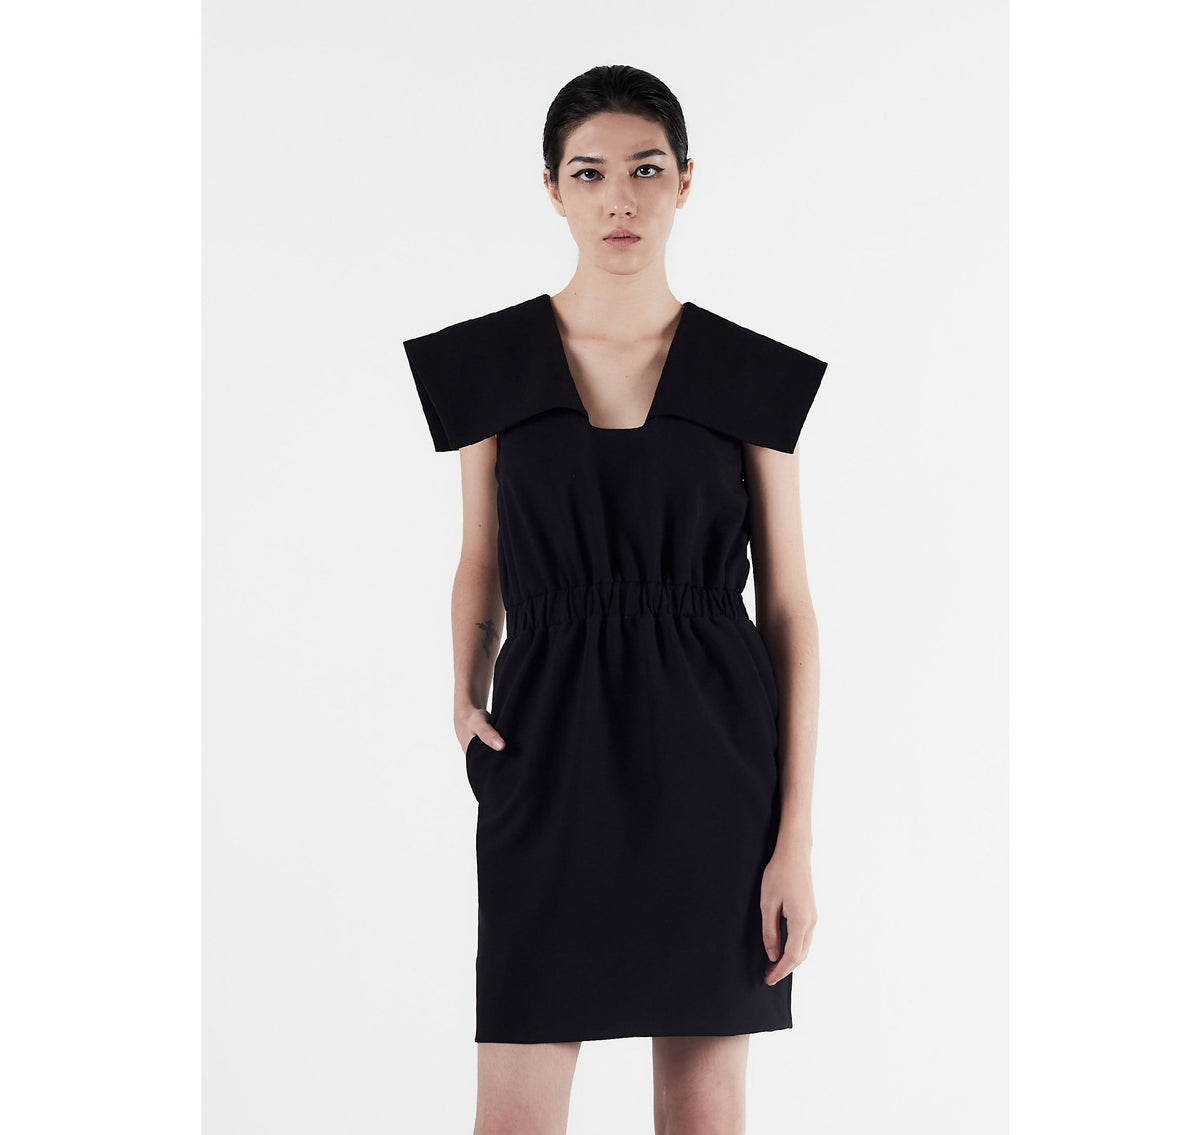 AMAP Op. 1 Minimalistic Square Collar Dress